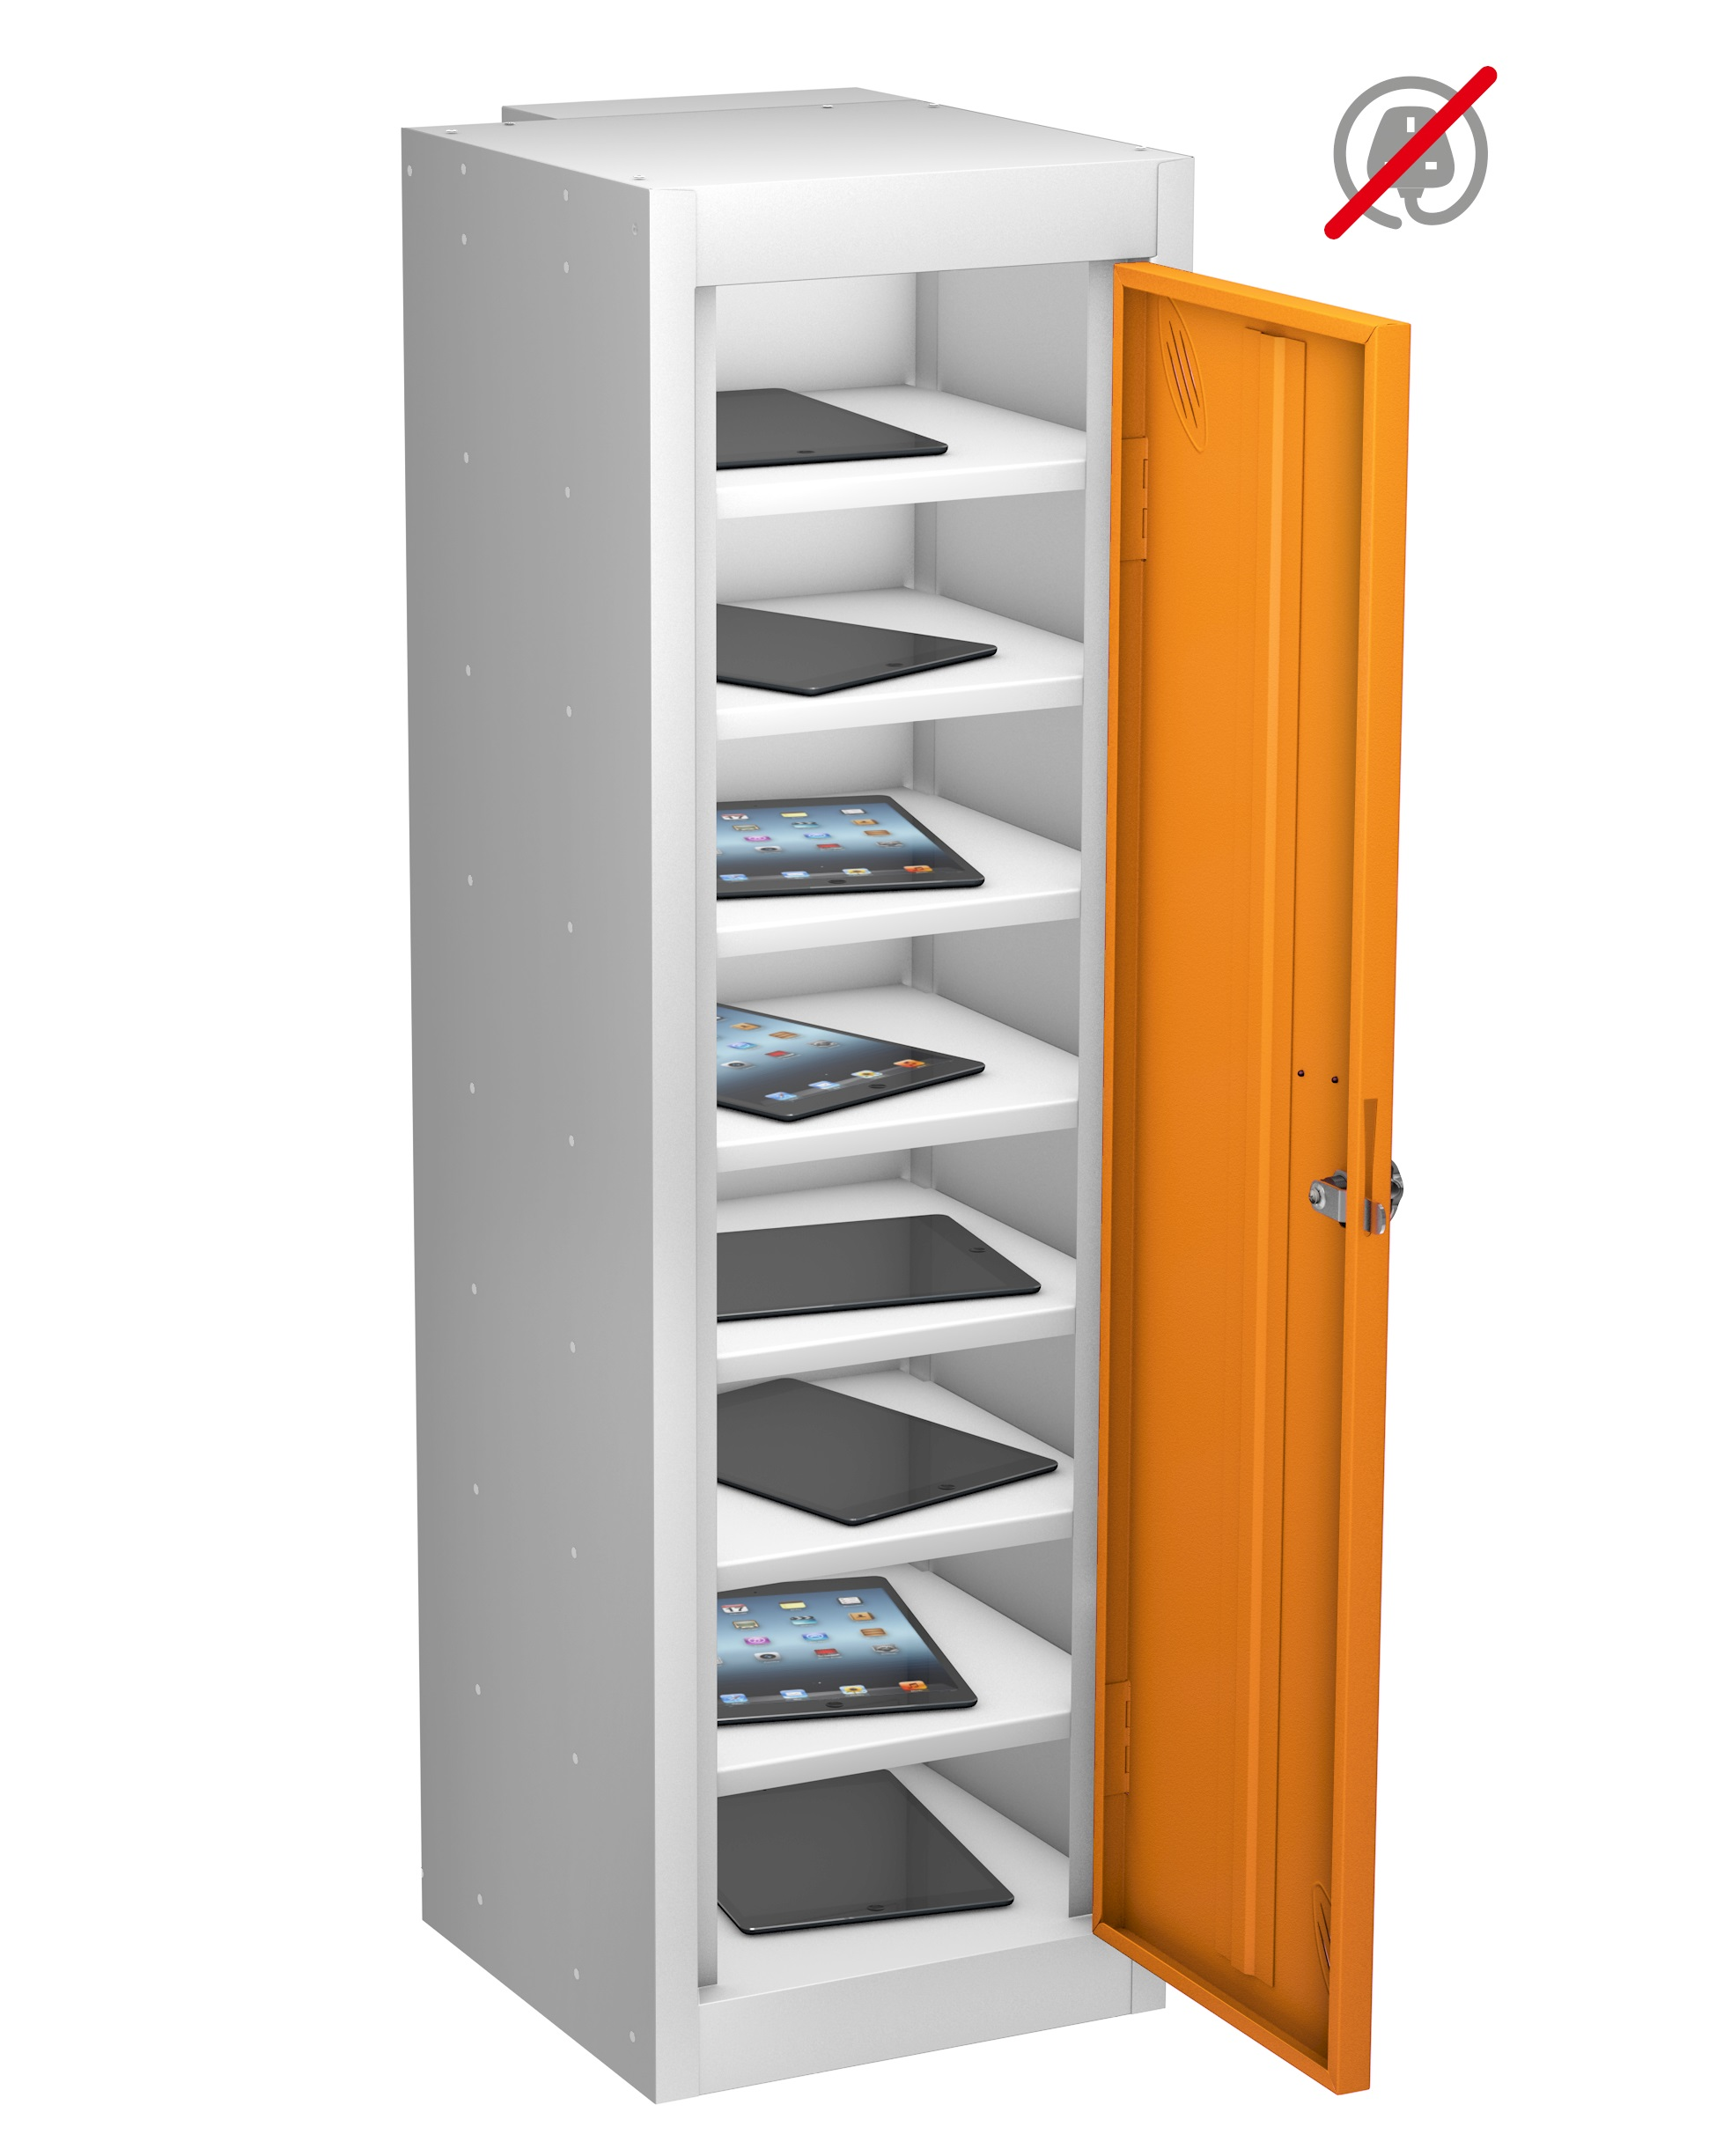 LOW TABLET Locker Sgle Dr 8 Shelf - Non Charge